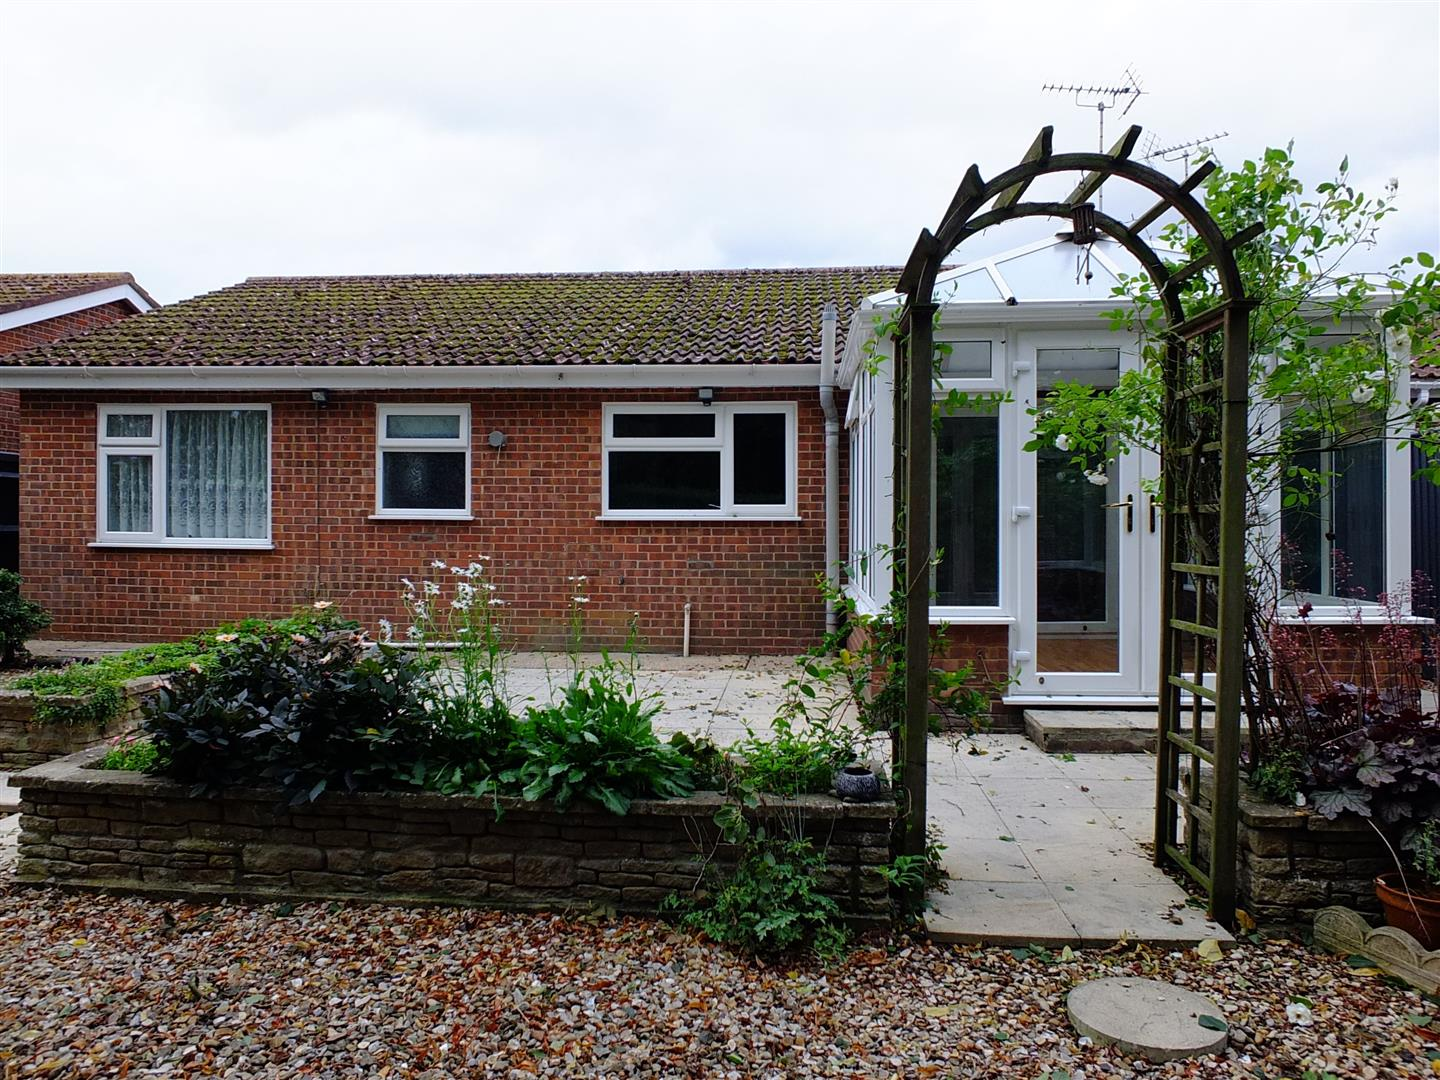 2 bed detached bungalow to rent in Long Sutton Spalding, PE12 9LZ 17